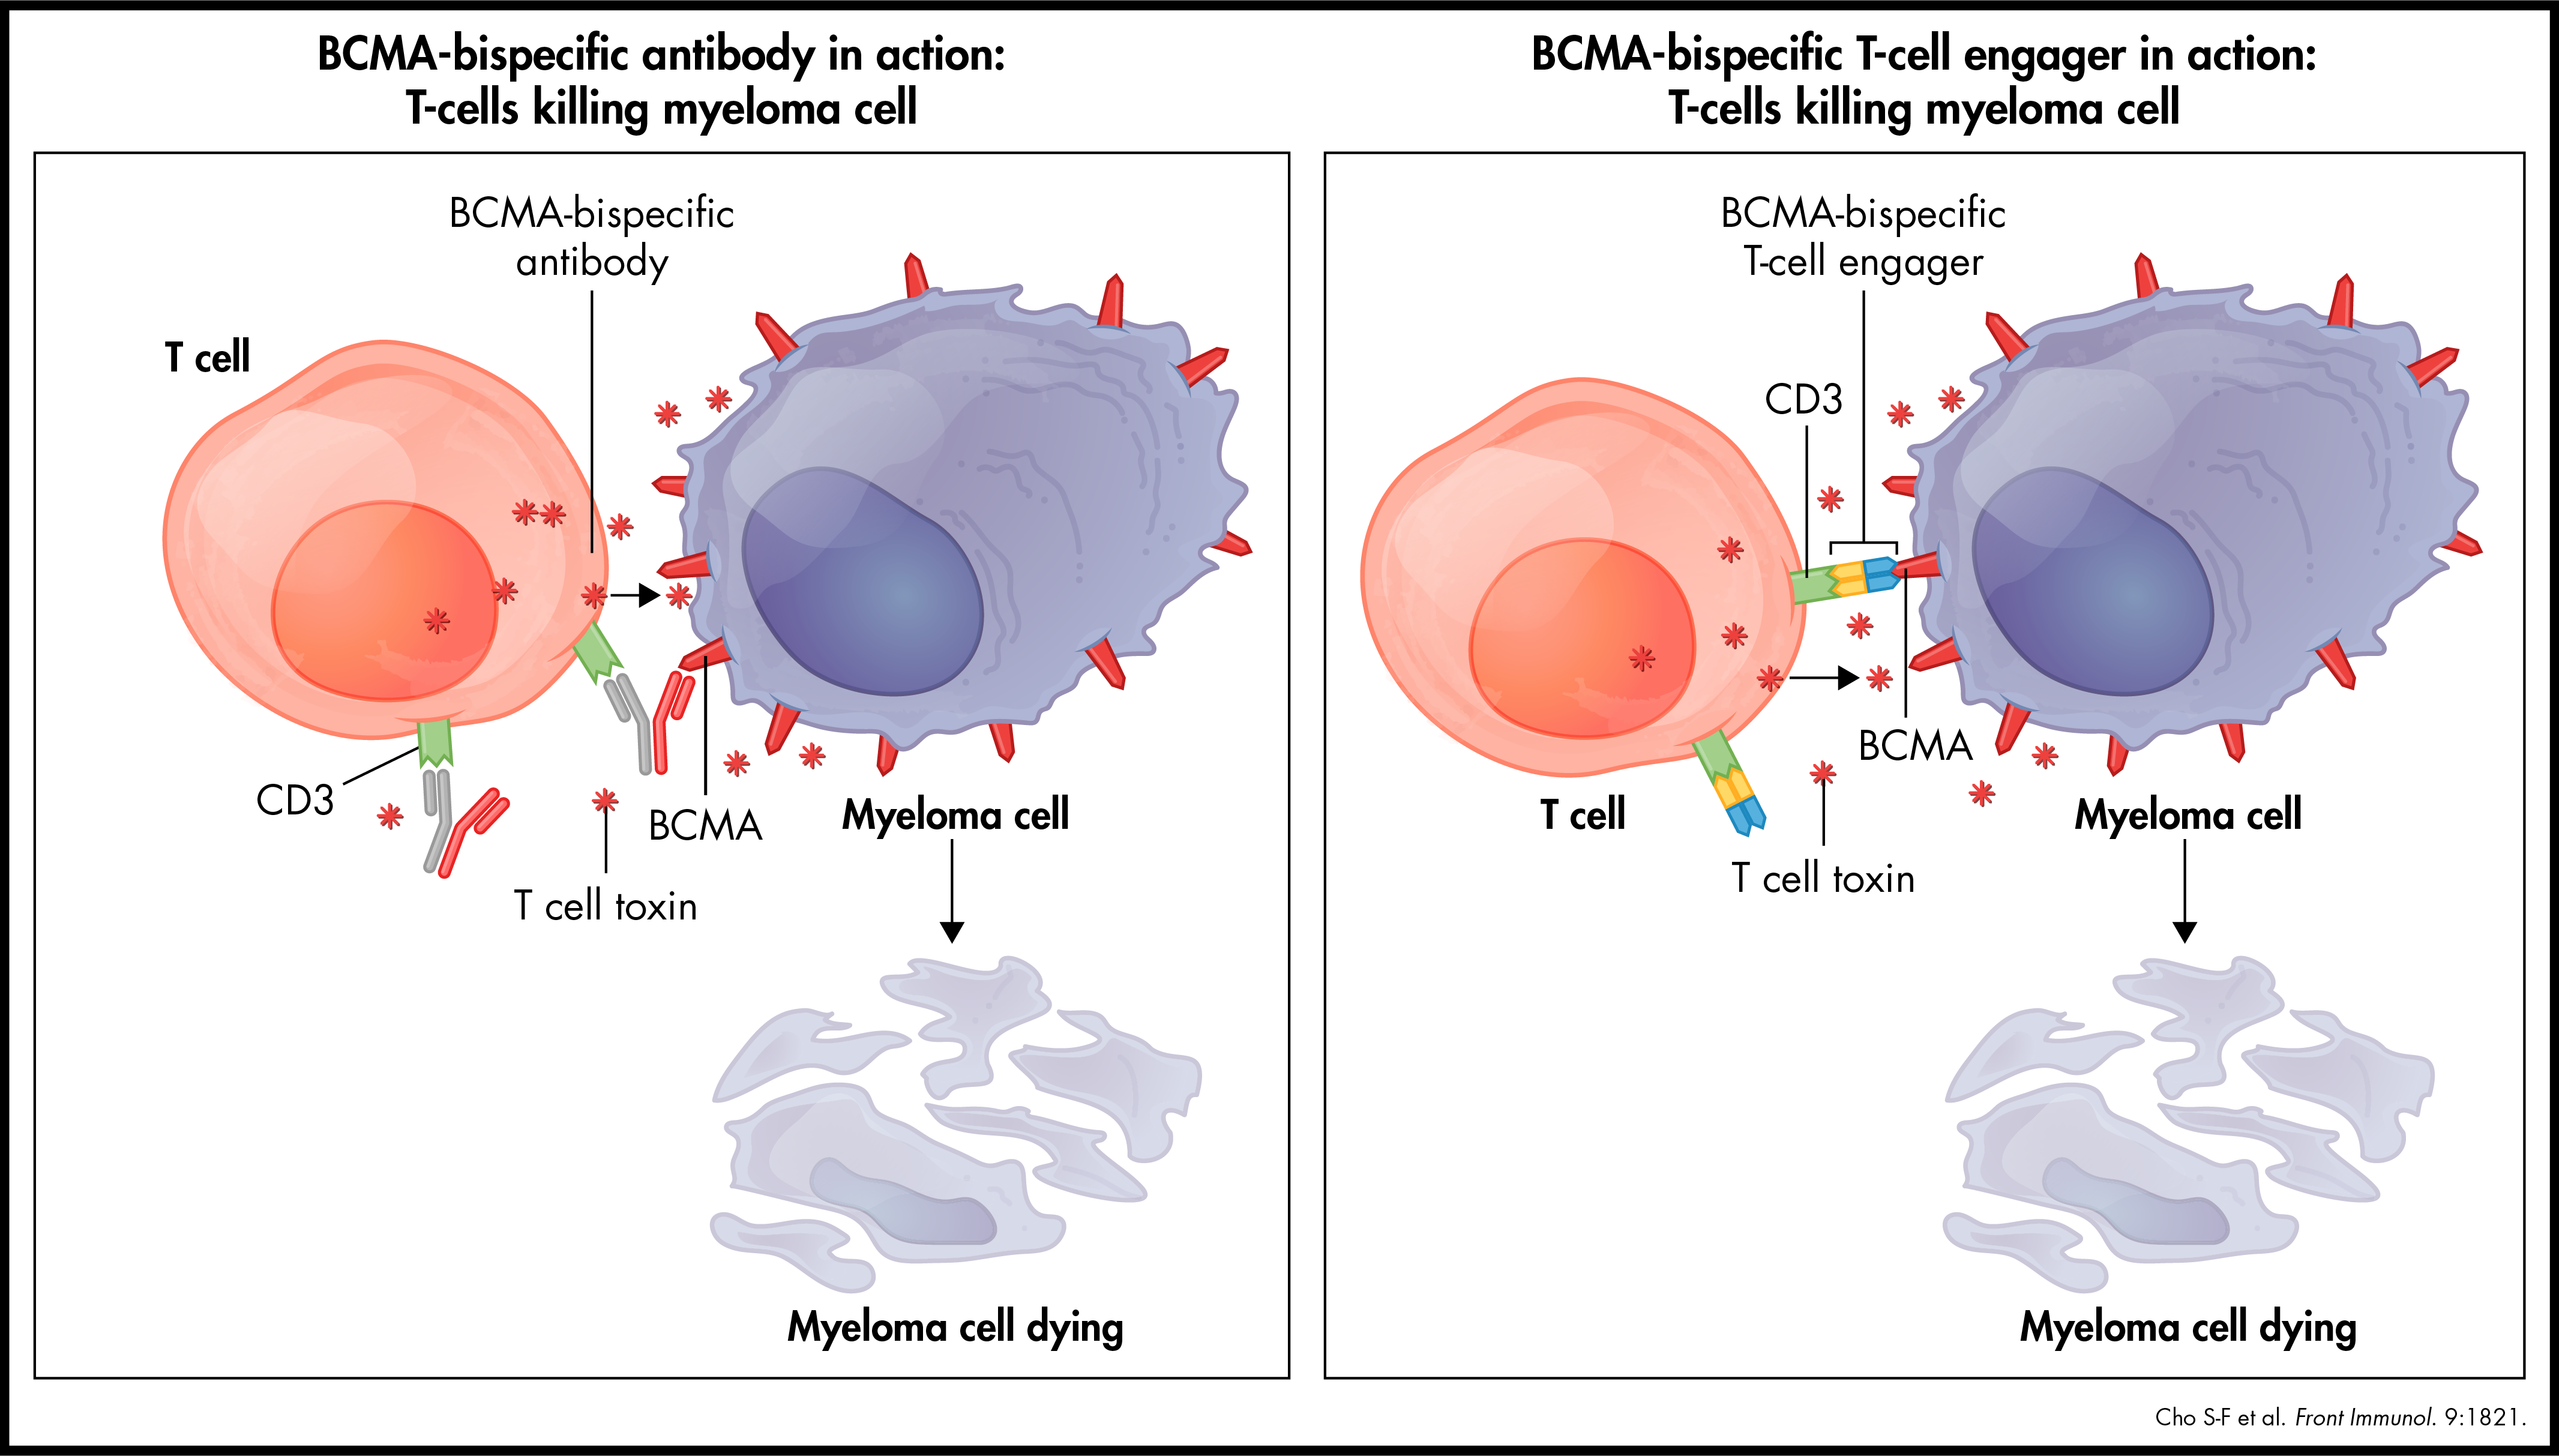 BCMA-bispecific antibody & T-cell engager in action: T-cells killing myeloma cell